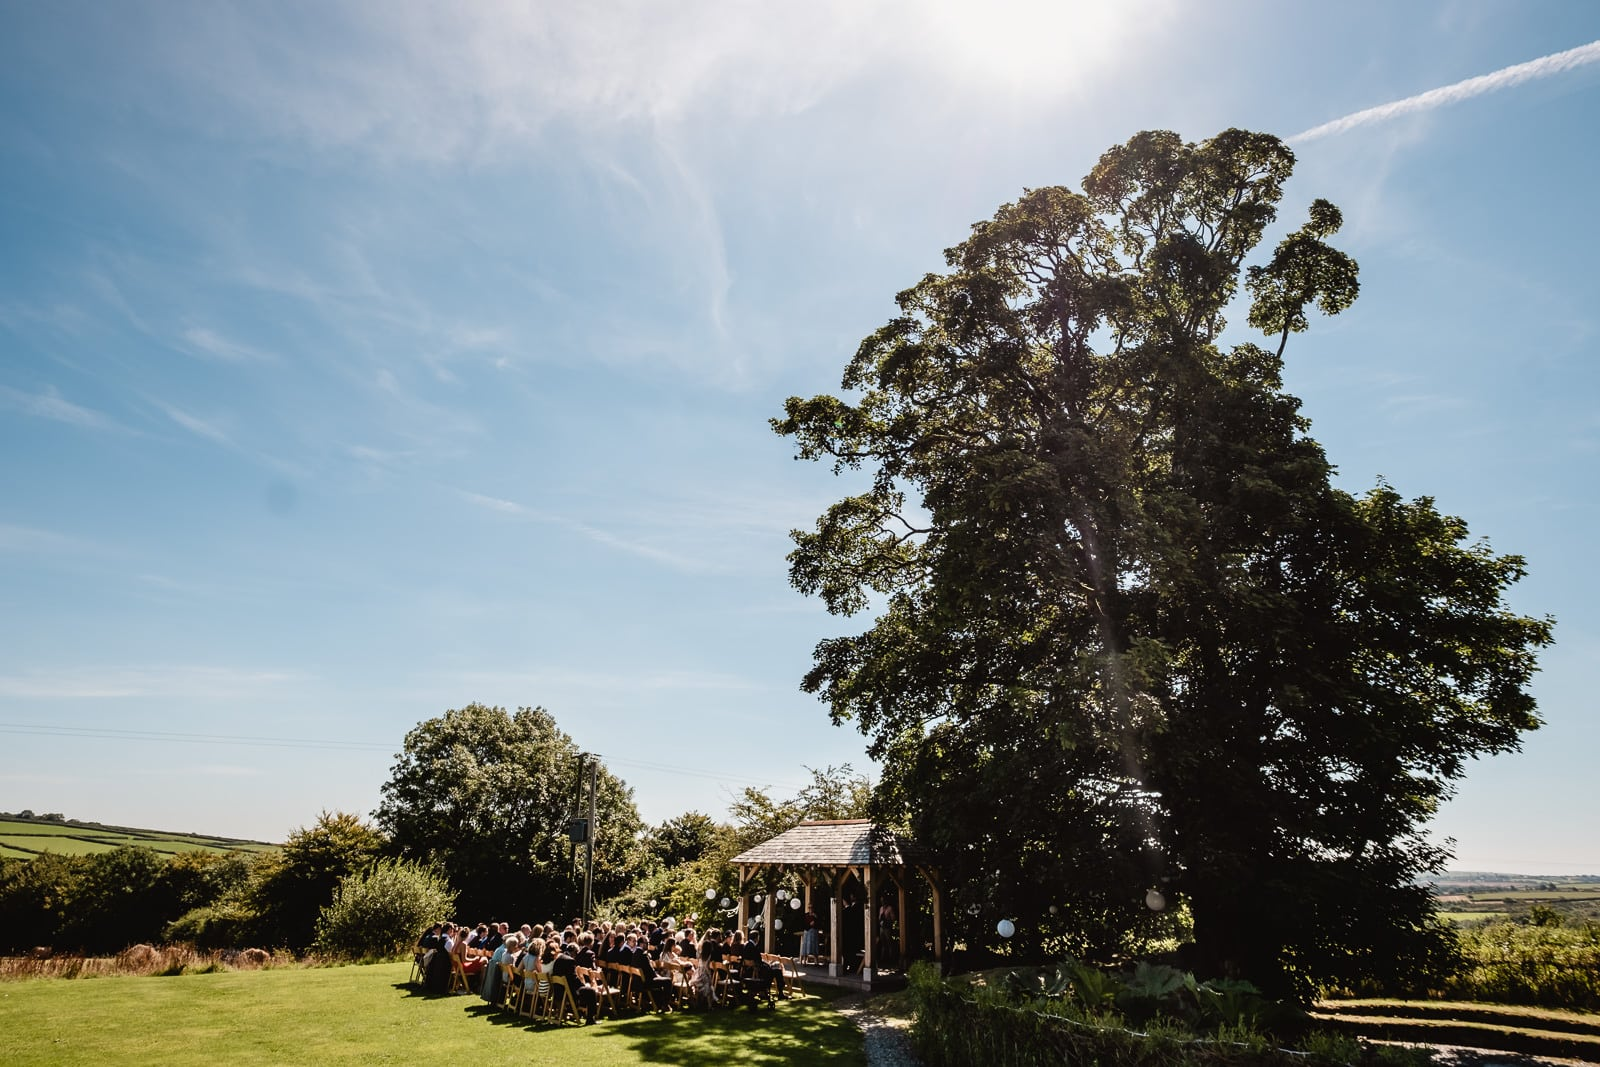 The outside arbour at Trevenna with a ceremony in full swing